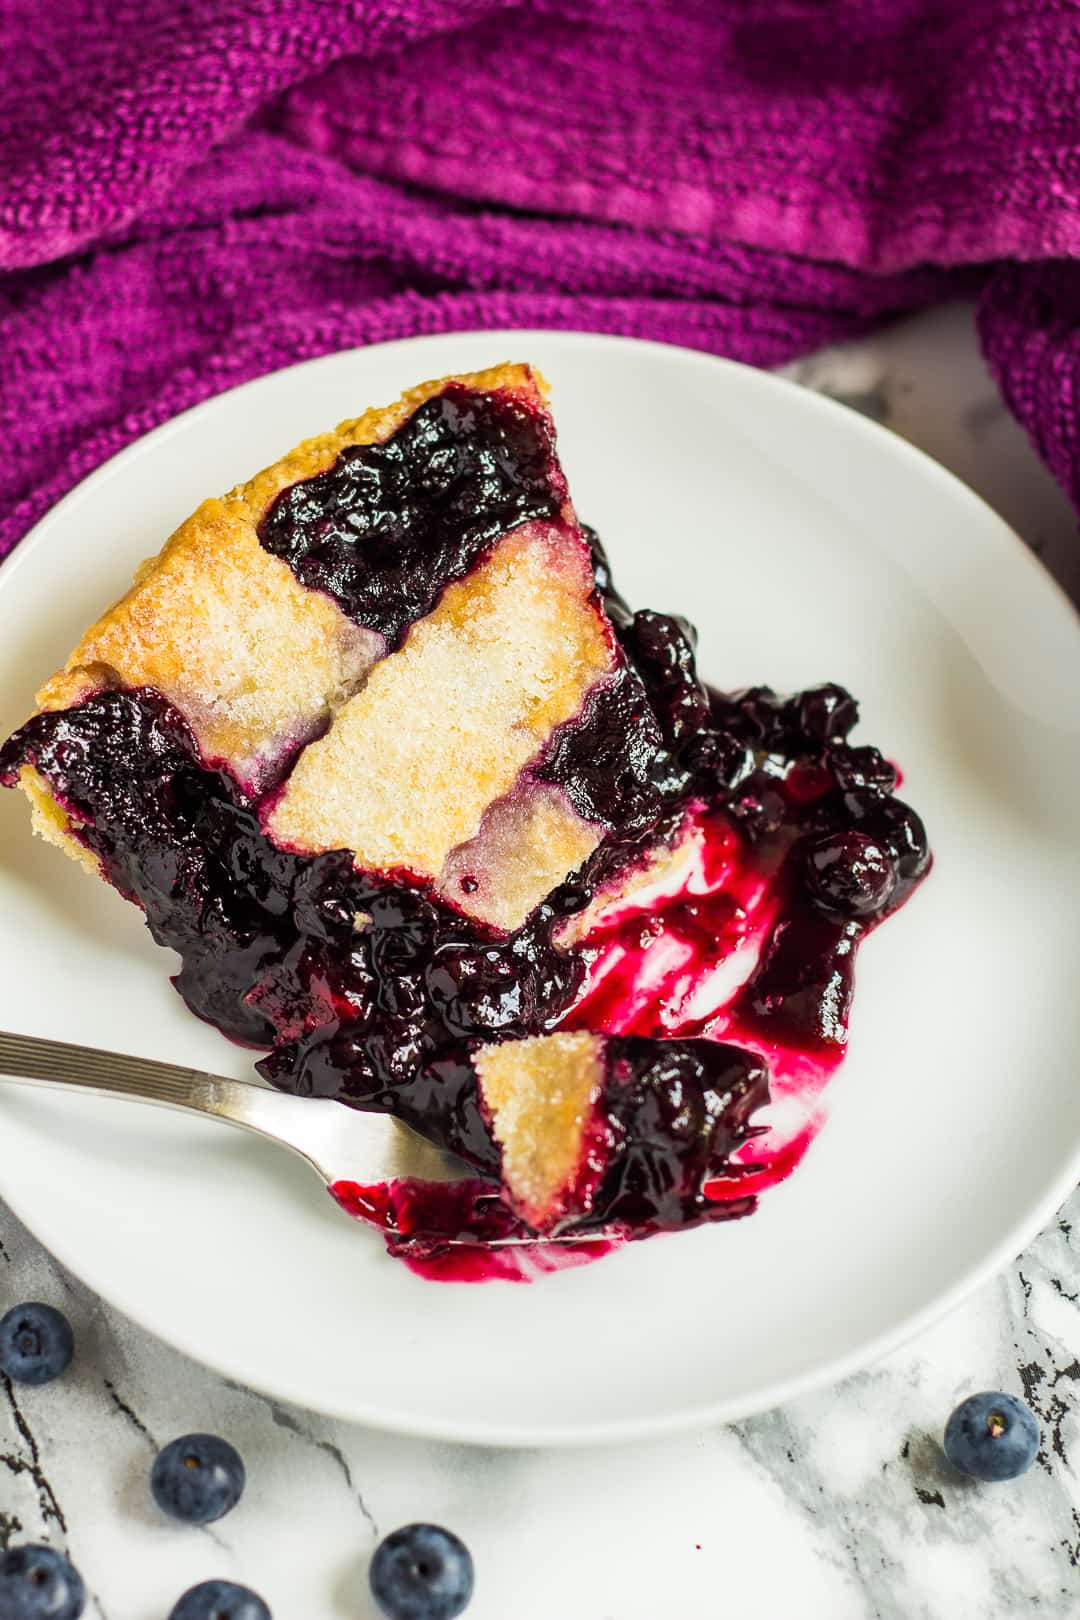 Overhead shot of a slice of homemade blueberry pie on a small white plate with a fork.